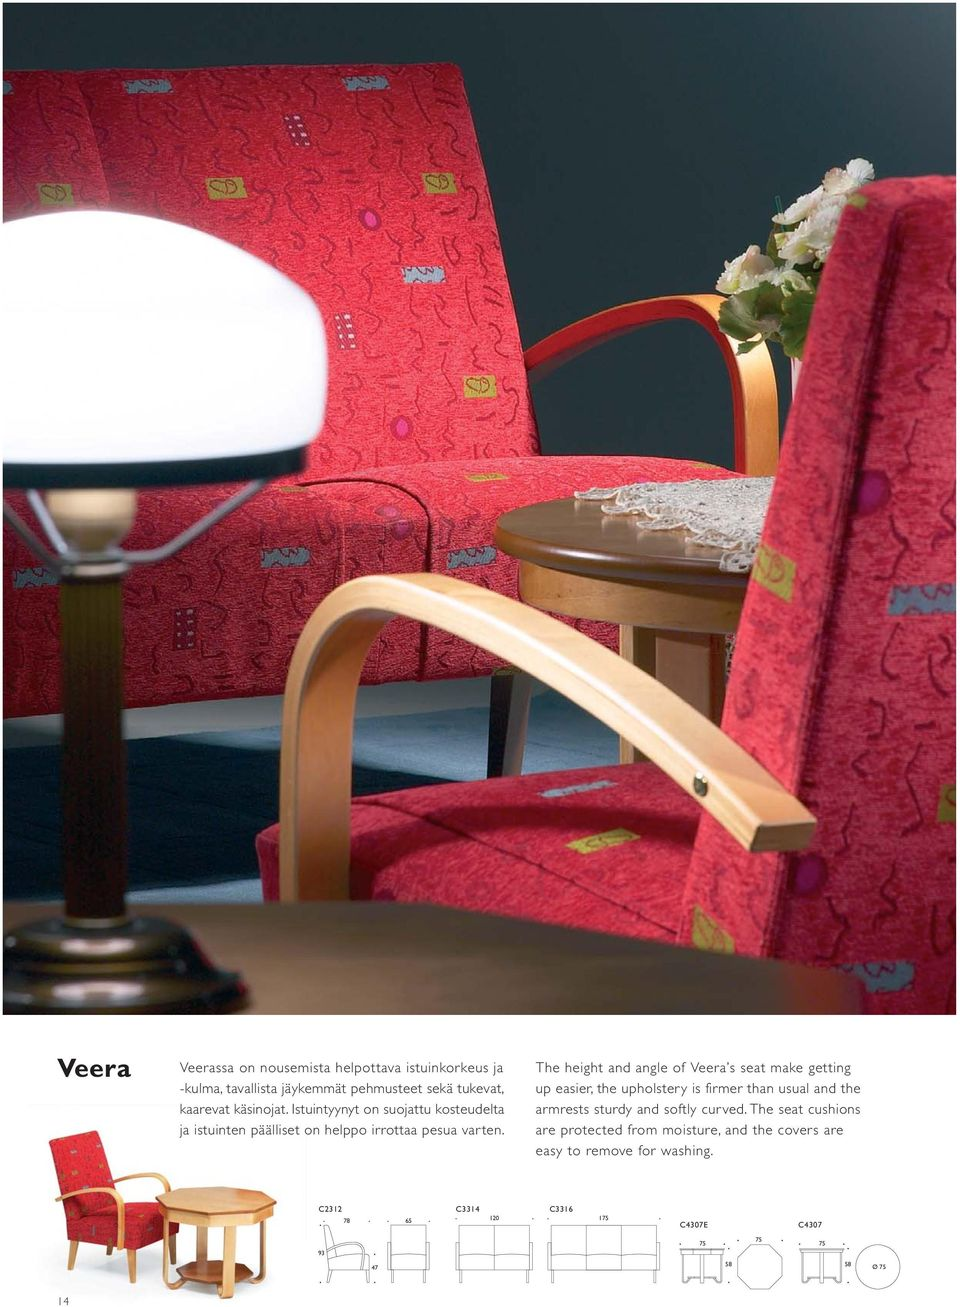 The height and angle of Veera s seat make getting up easier, the upholstery is firmer than usual and the armrests sturdy and softly